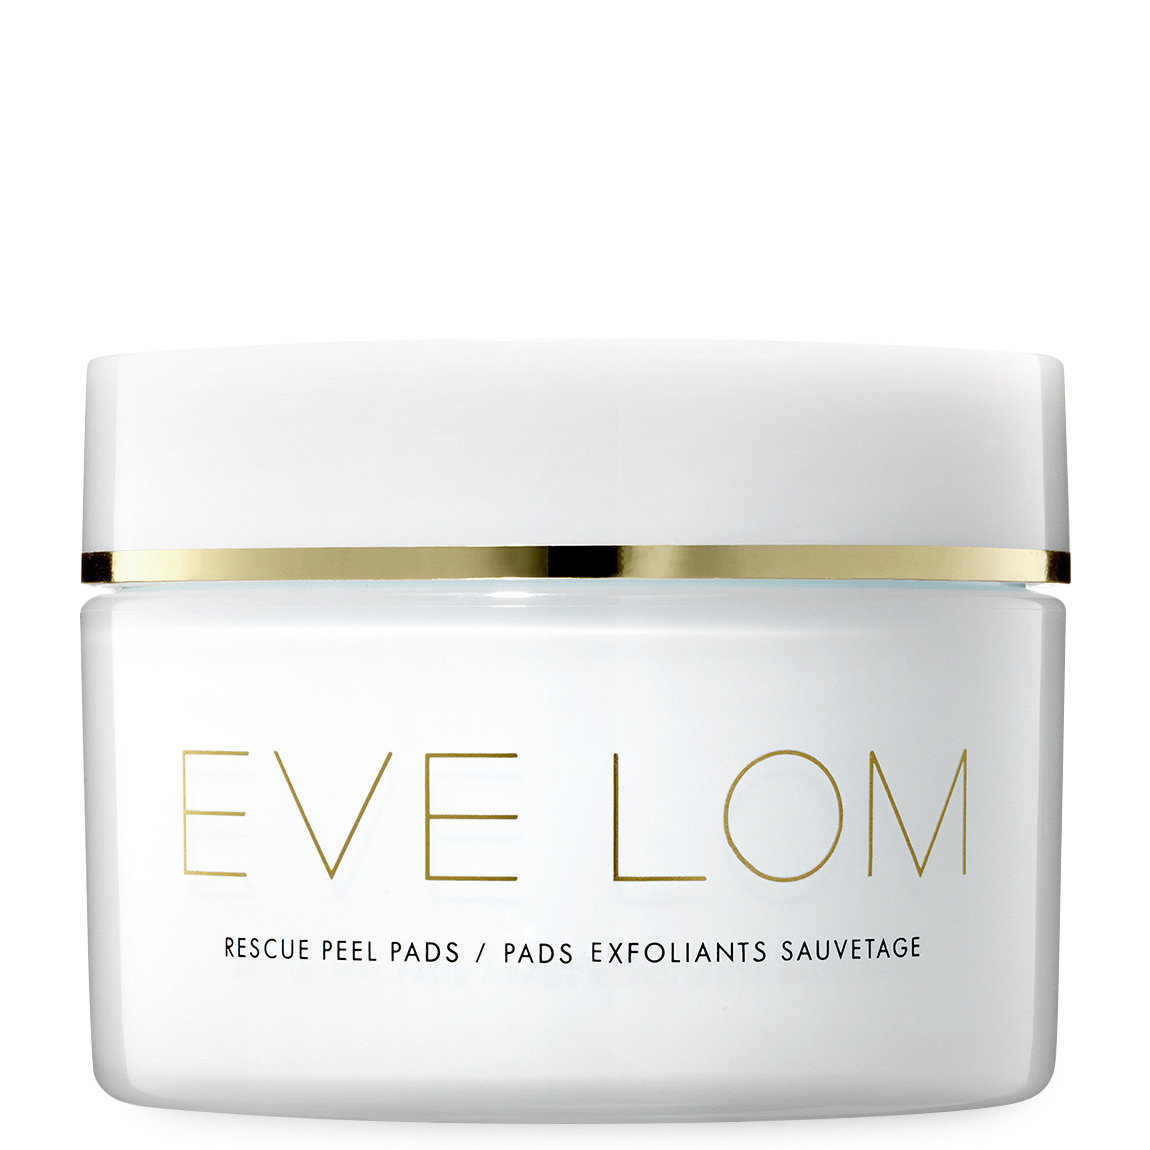 EVE LOM Rescue Peel Pads product swatch.